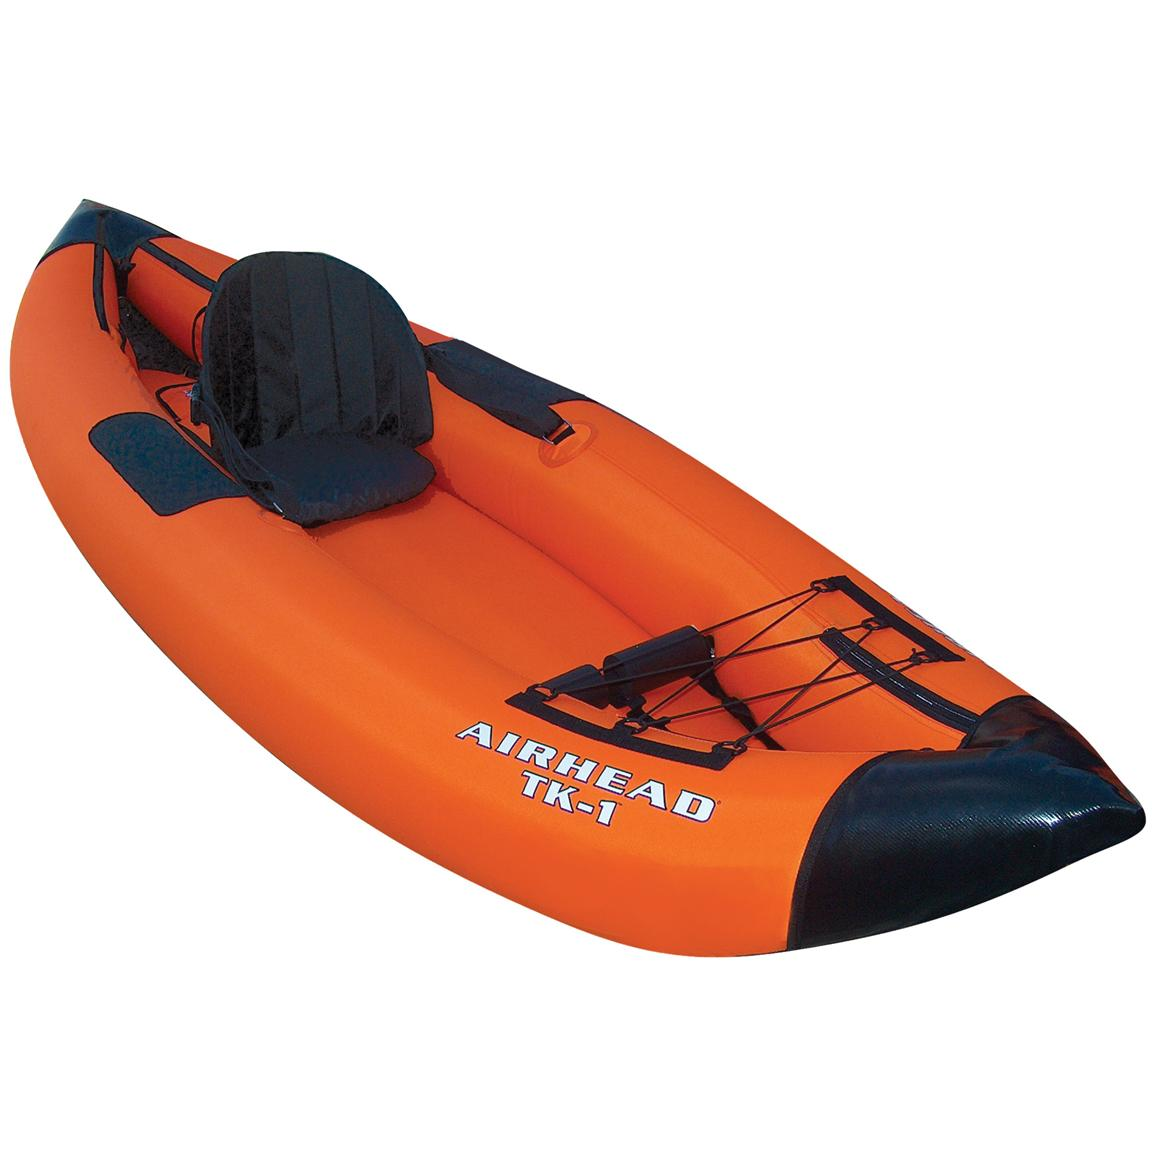 Airhead Deluxe Inflatable Travel Kayak, 1-person